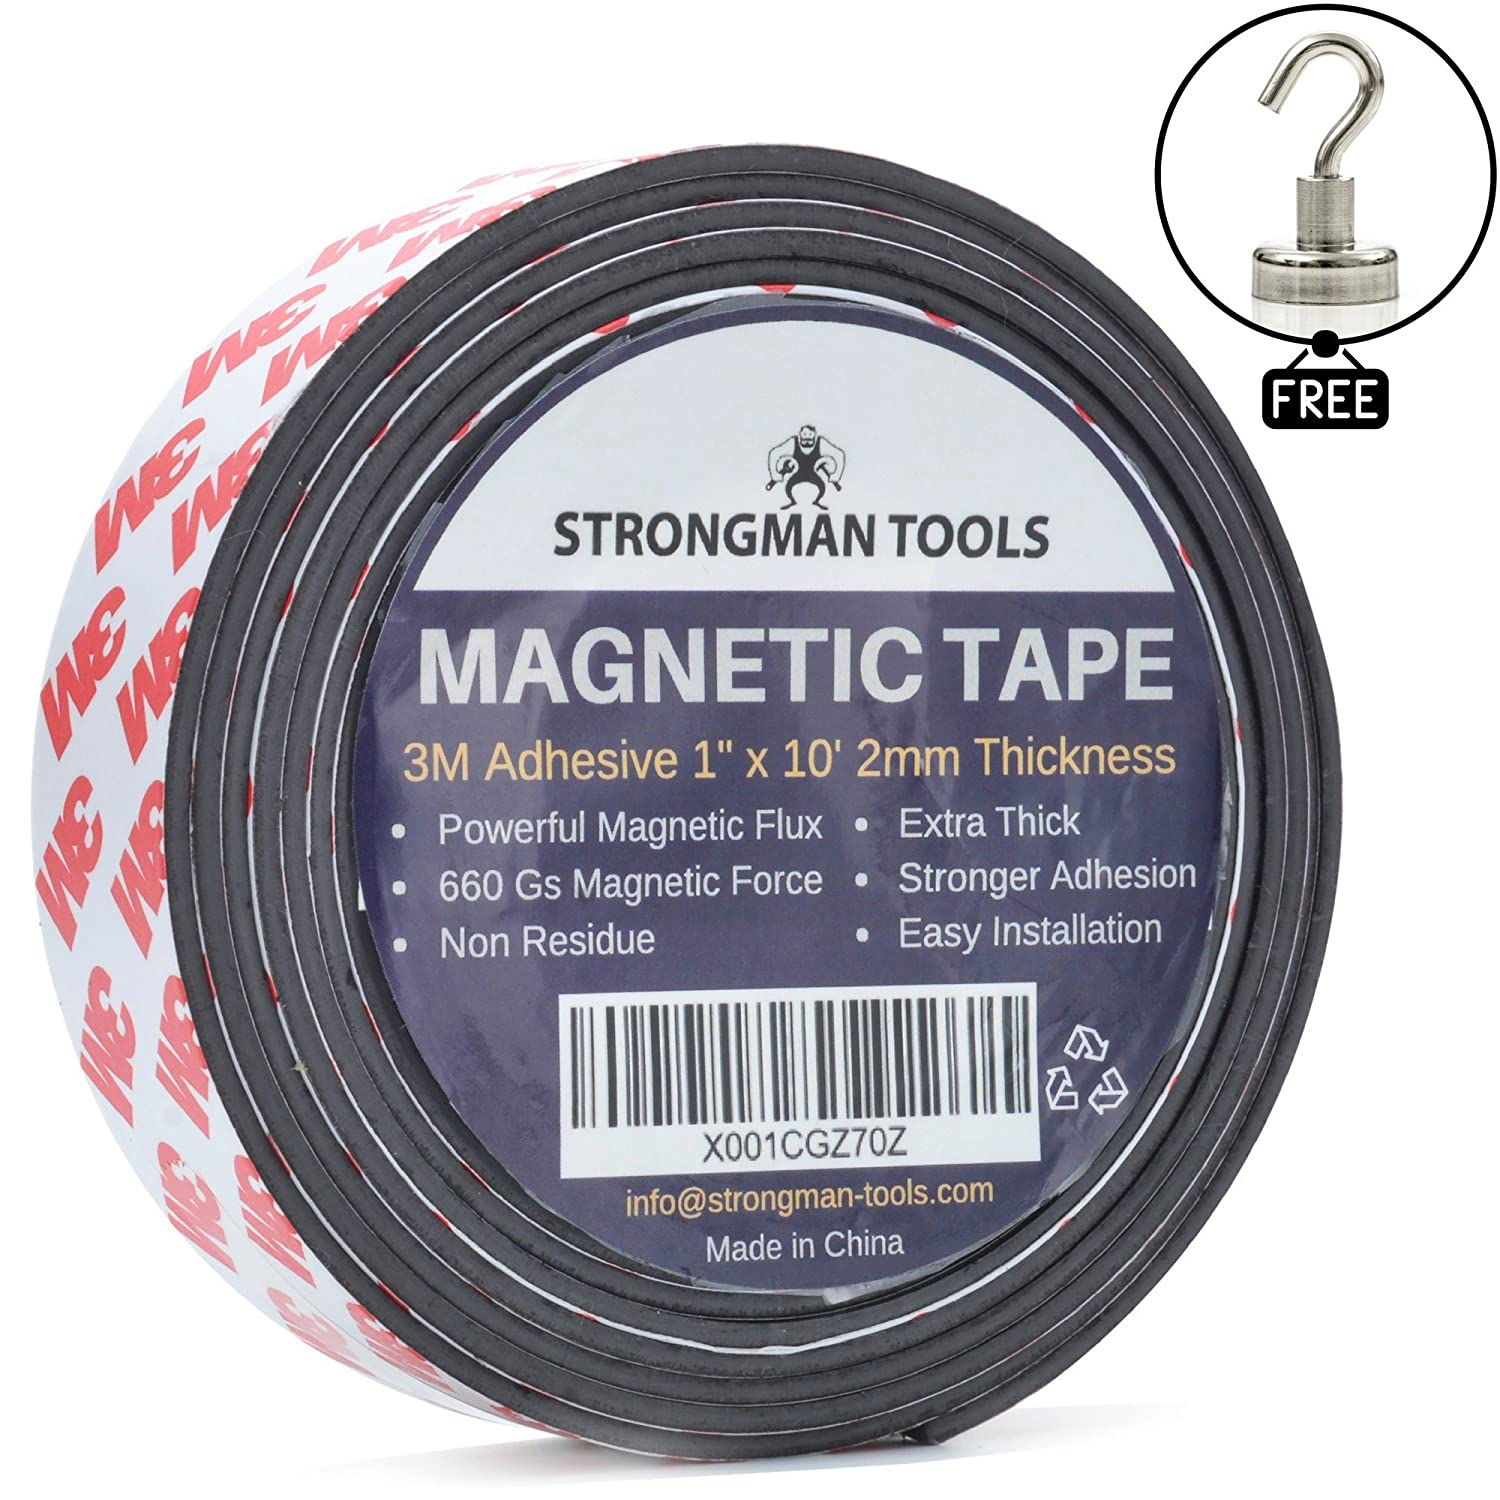 """Strongman Tools Magnetic Tape Roll 1"""" x 10 Feet, 2mm Thick, Free 25LBS Magnetic Hook! Genuine 3M Adhesive Backing, Extra Thick and Non Residue"""